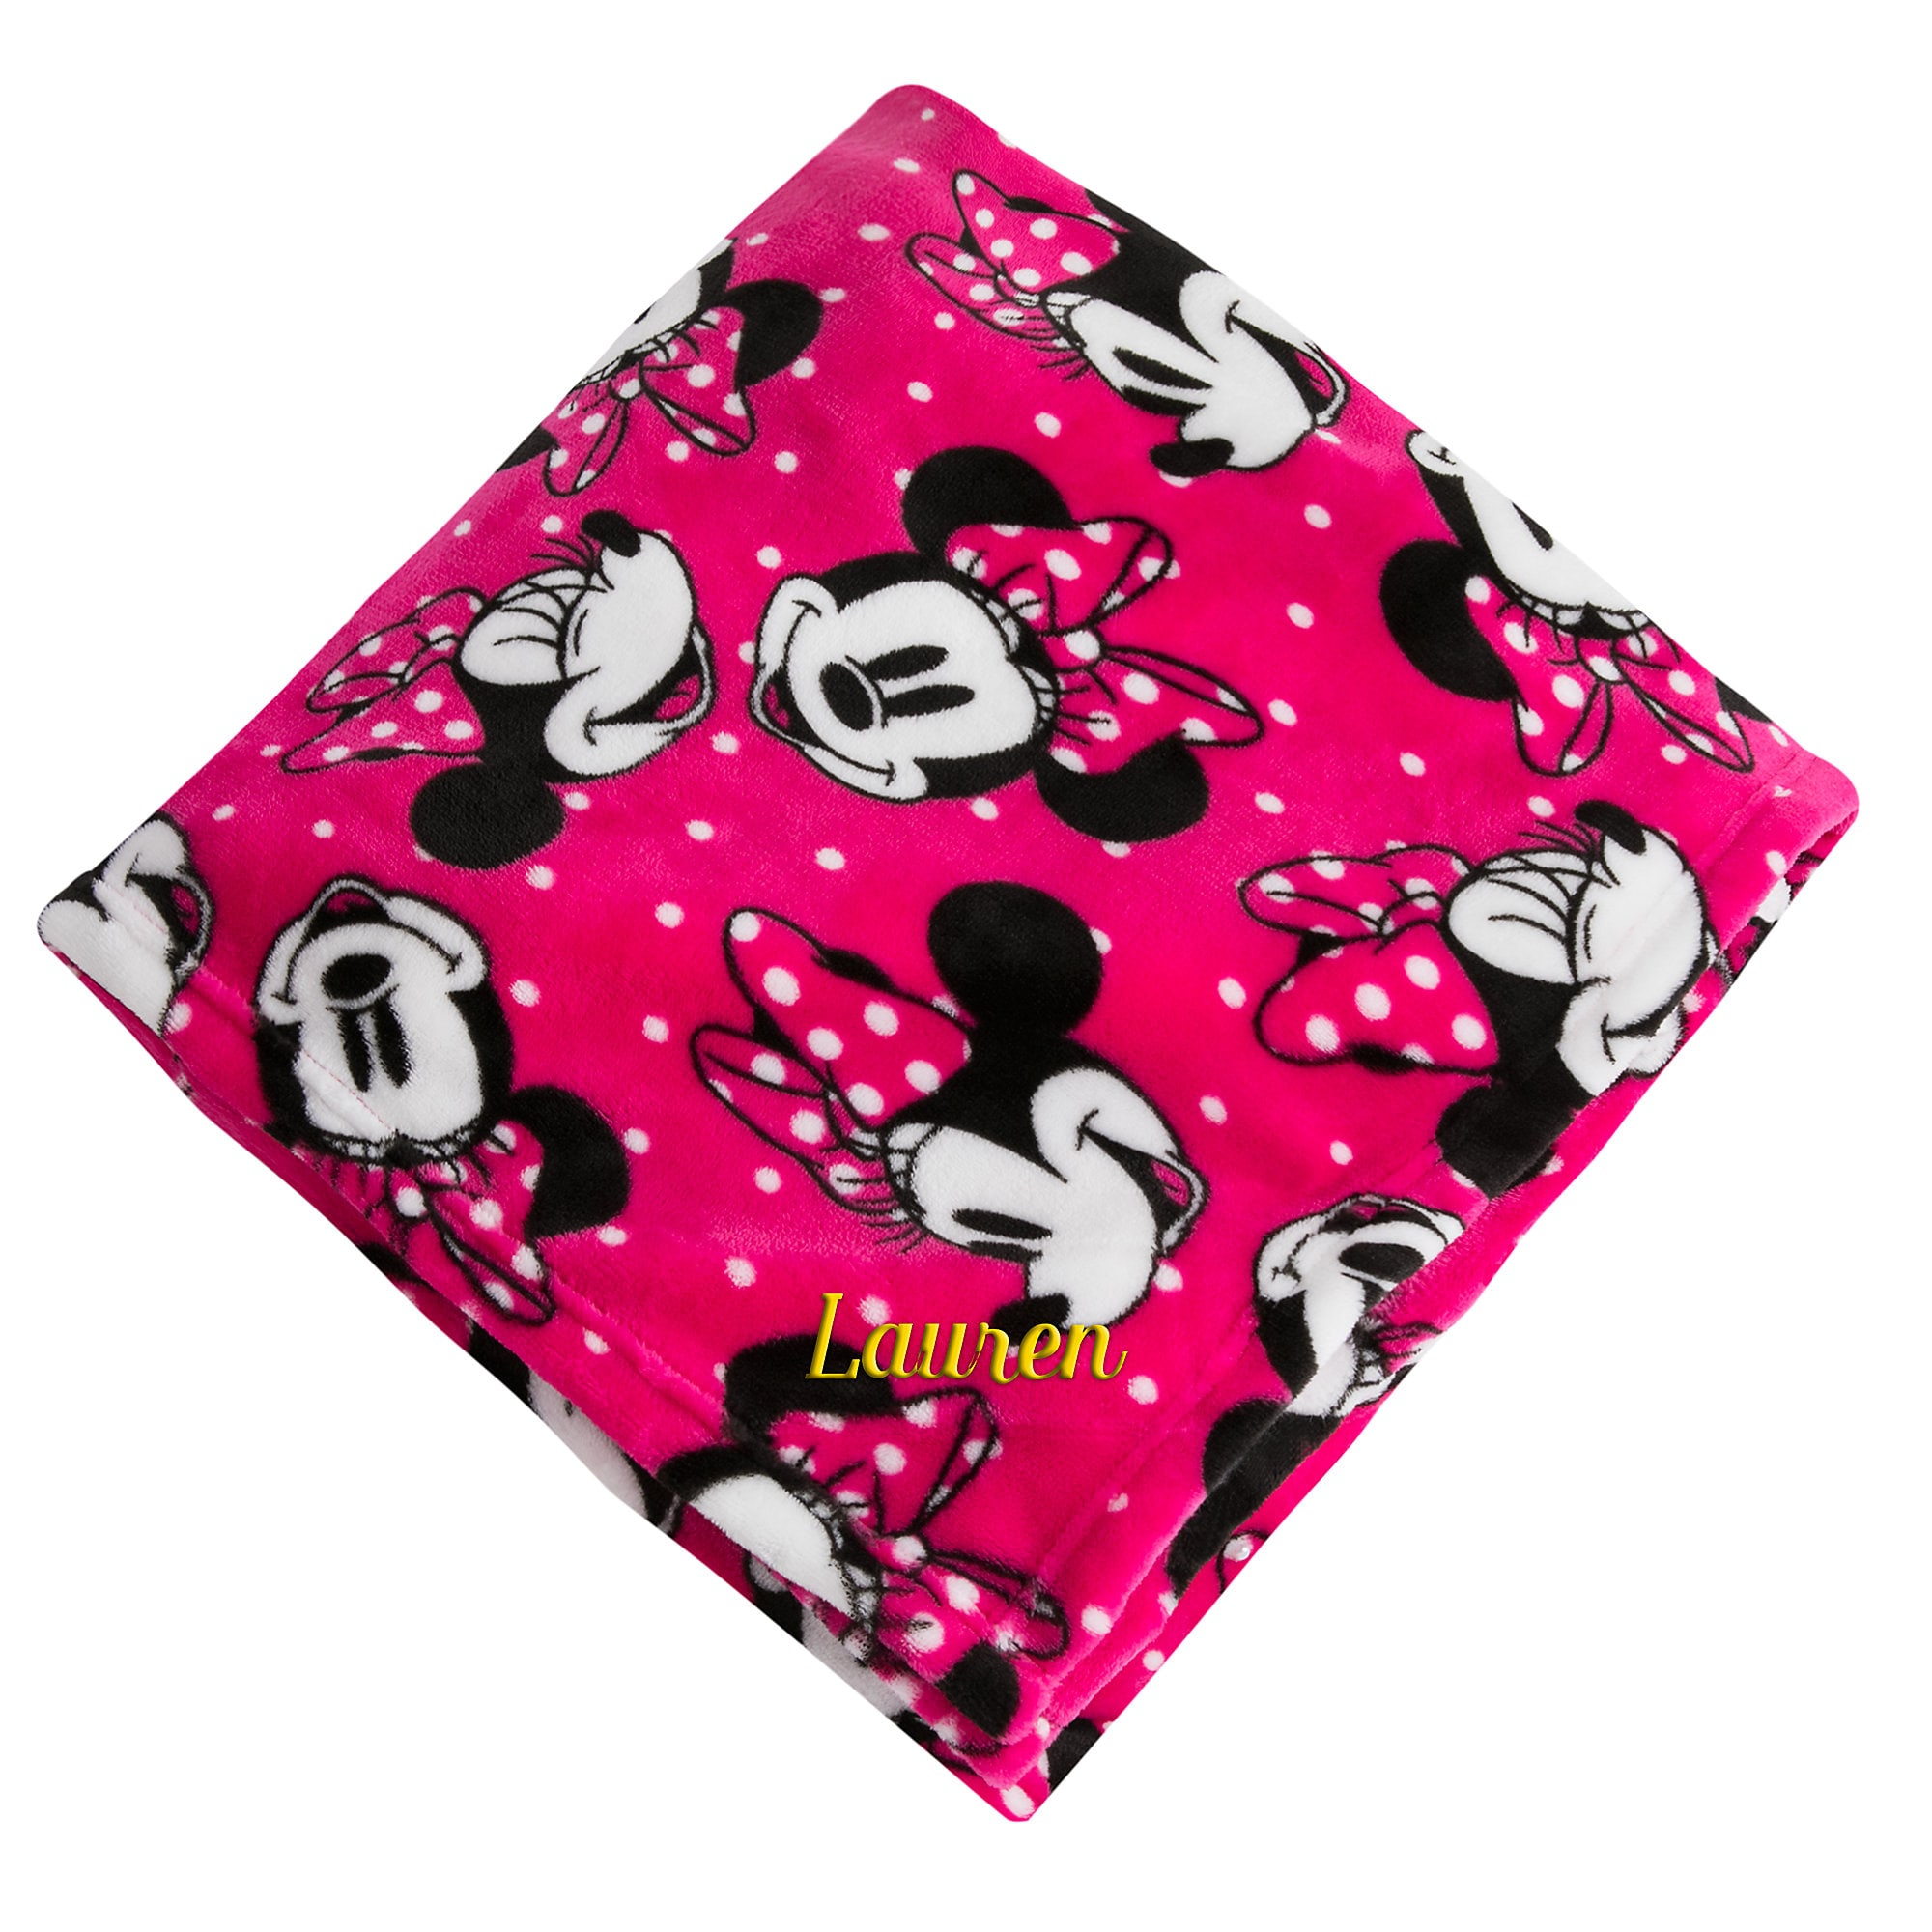 Stunning Minnie Mouse Fleece Throw Personalizable